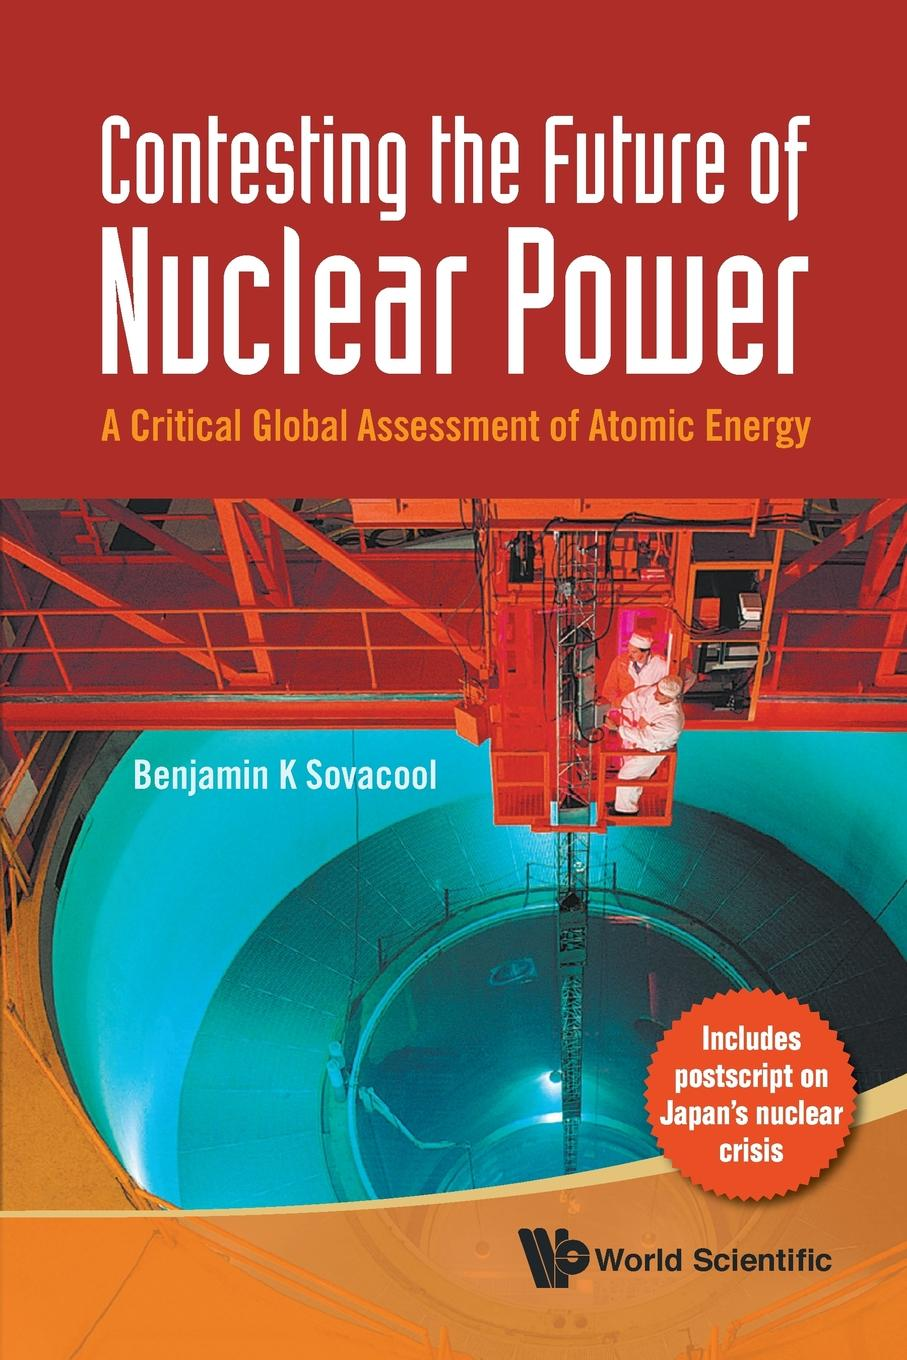 Benjamin K Sovacool CONTESTING THE FUTURE OF NUCLEAR POWER. A CRITICAL GLOBAL ASSESSMENT OF ATOMIC ENERGY denis stein marion preuß nina höhne economical implications of shutdowns of nuclear power in germany